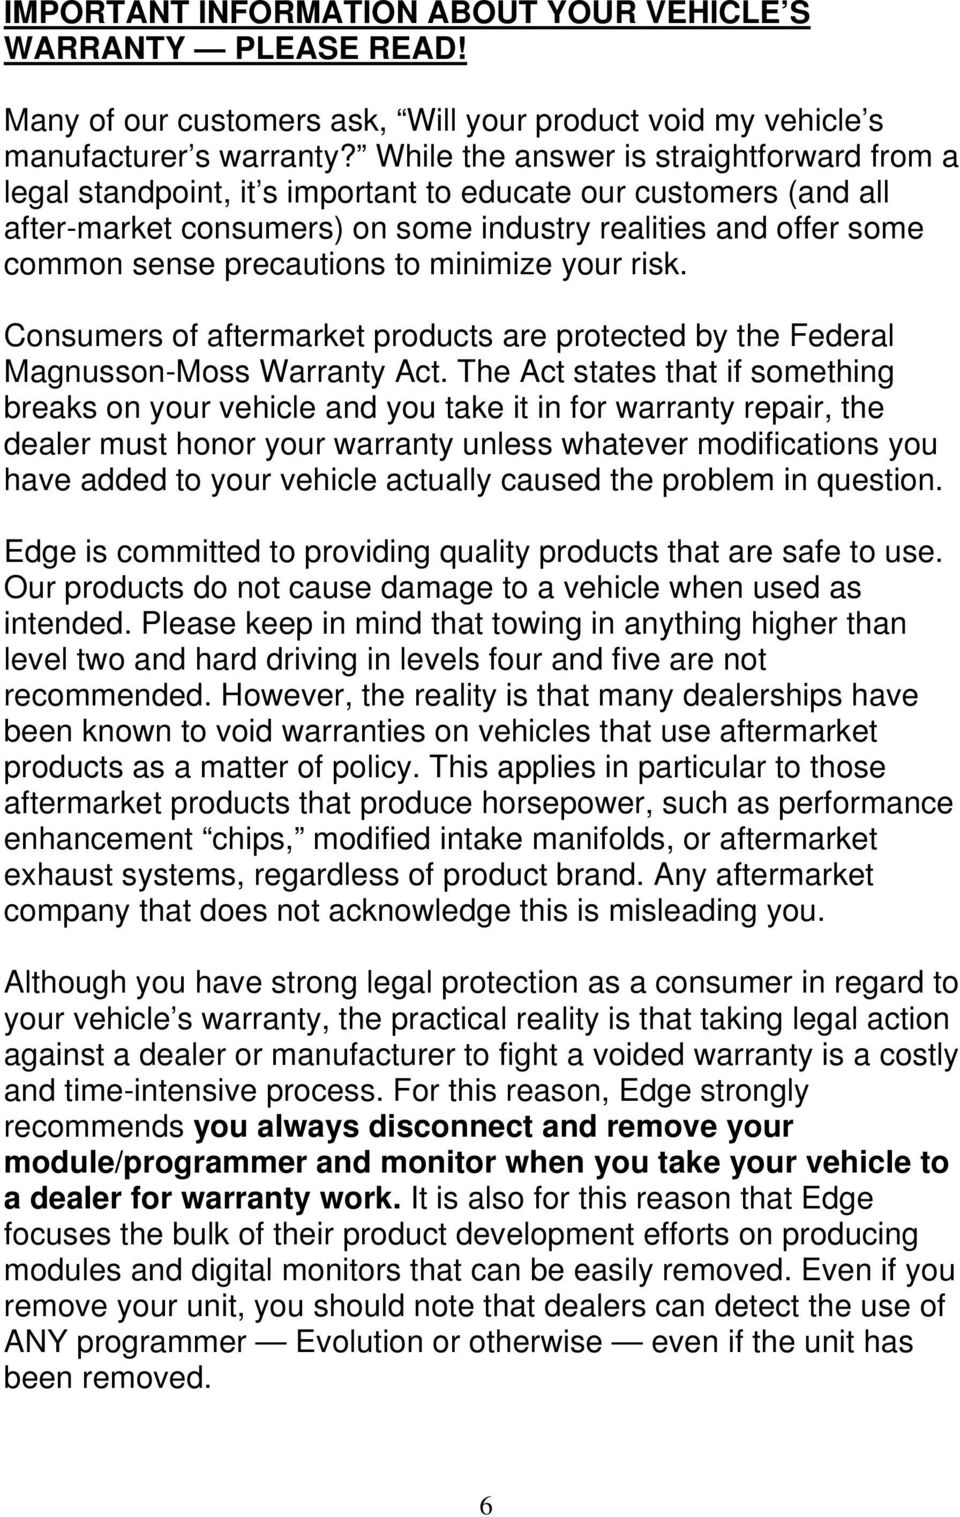 precautions to minimize your risk. Consumers of aftermarket products are protected by the Federal Magnusson-Moss Warranty Act.